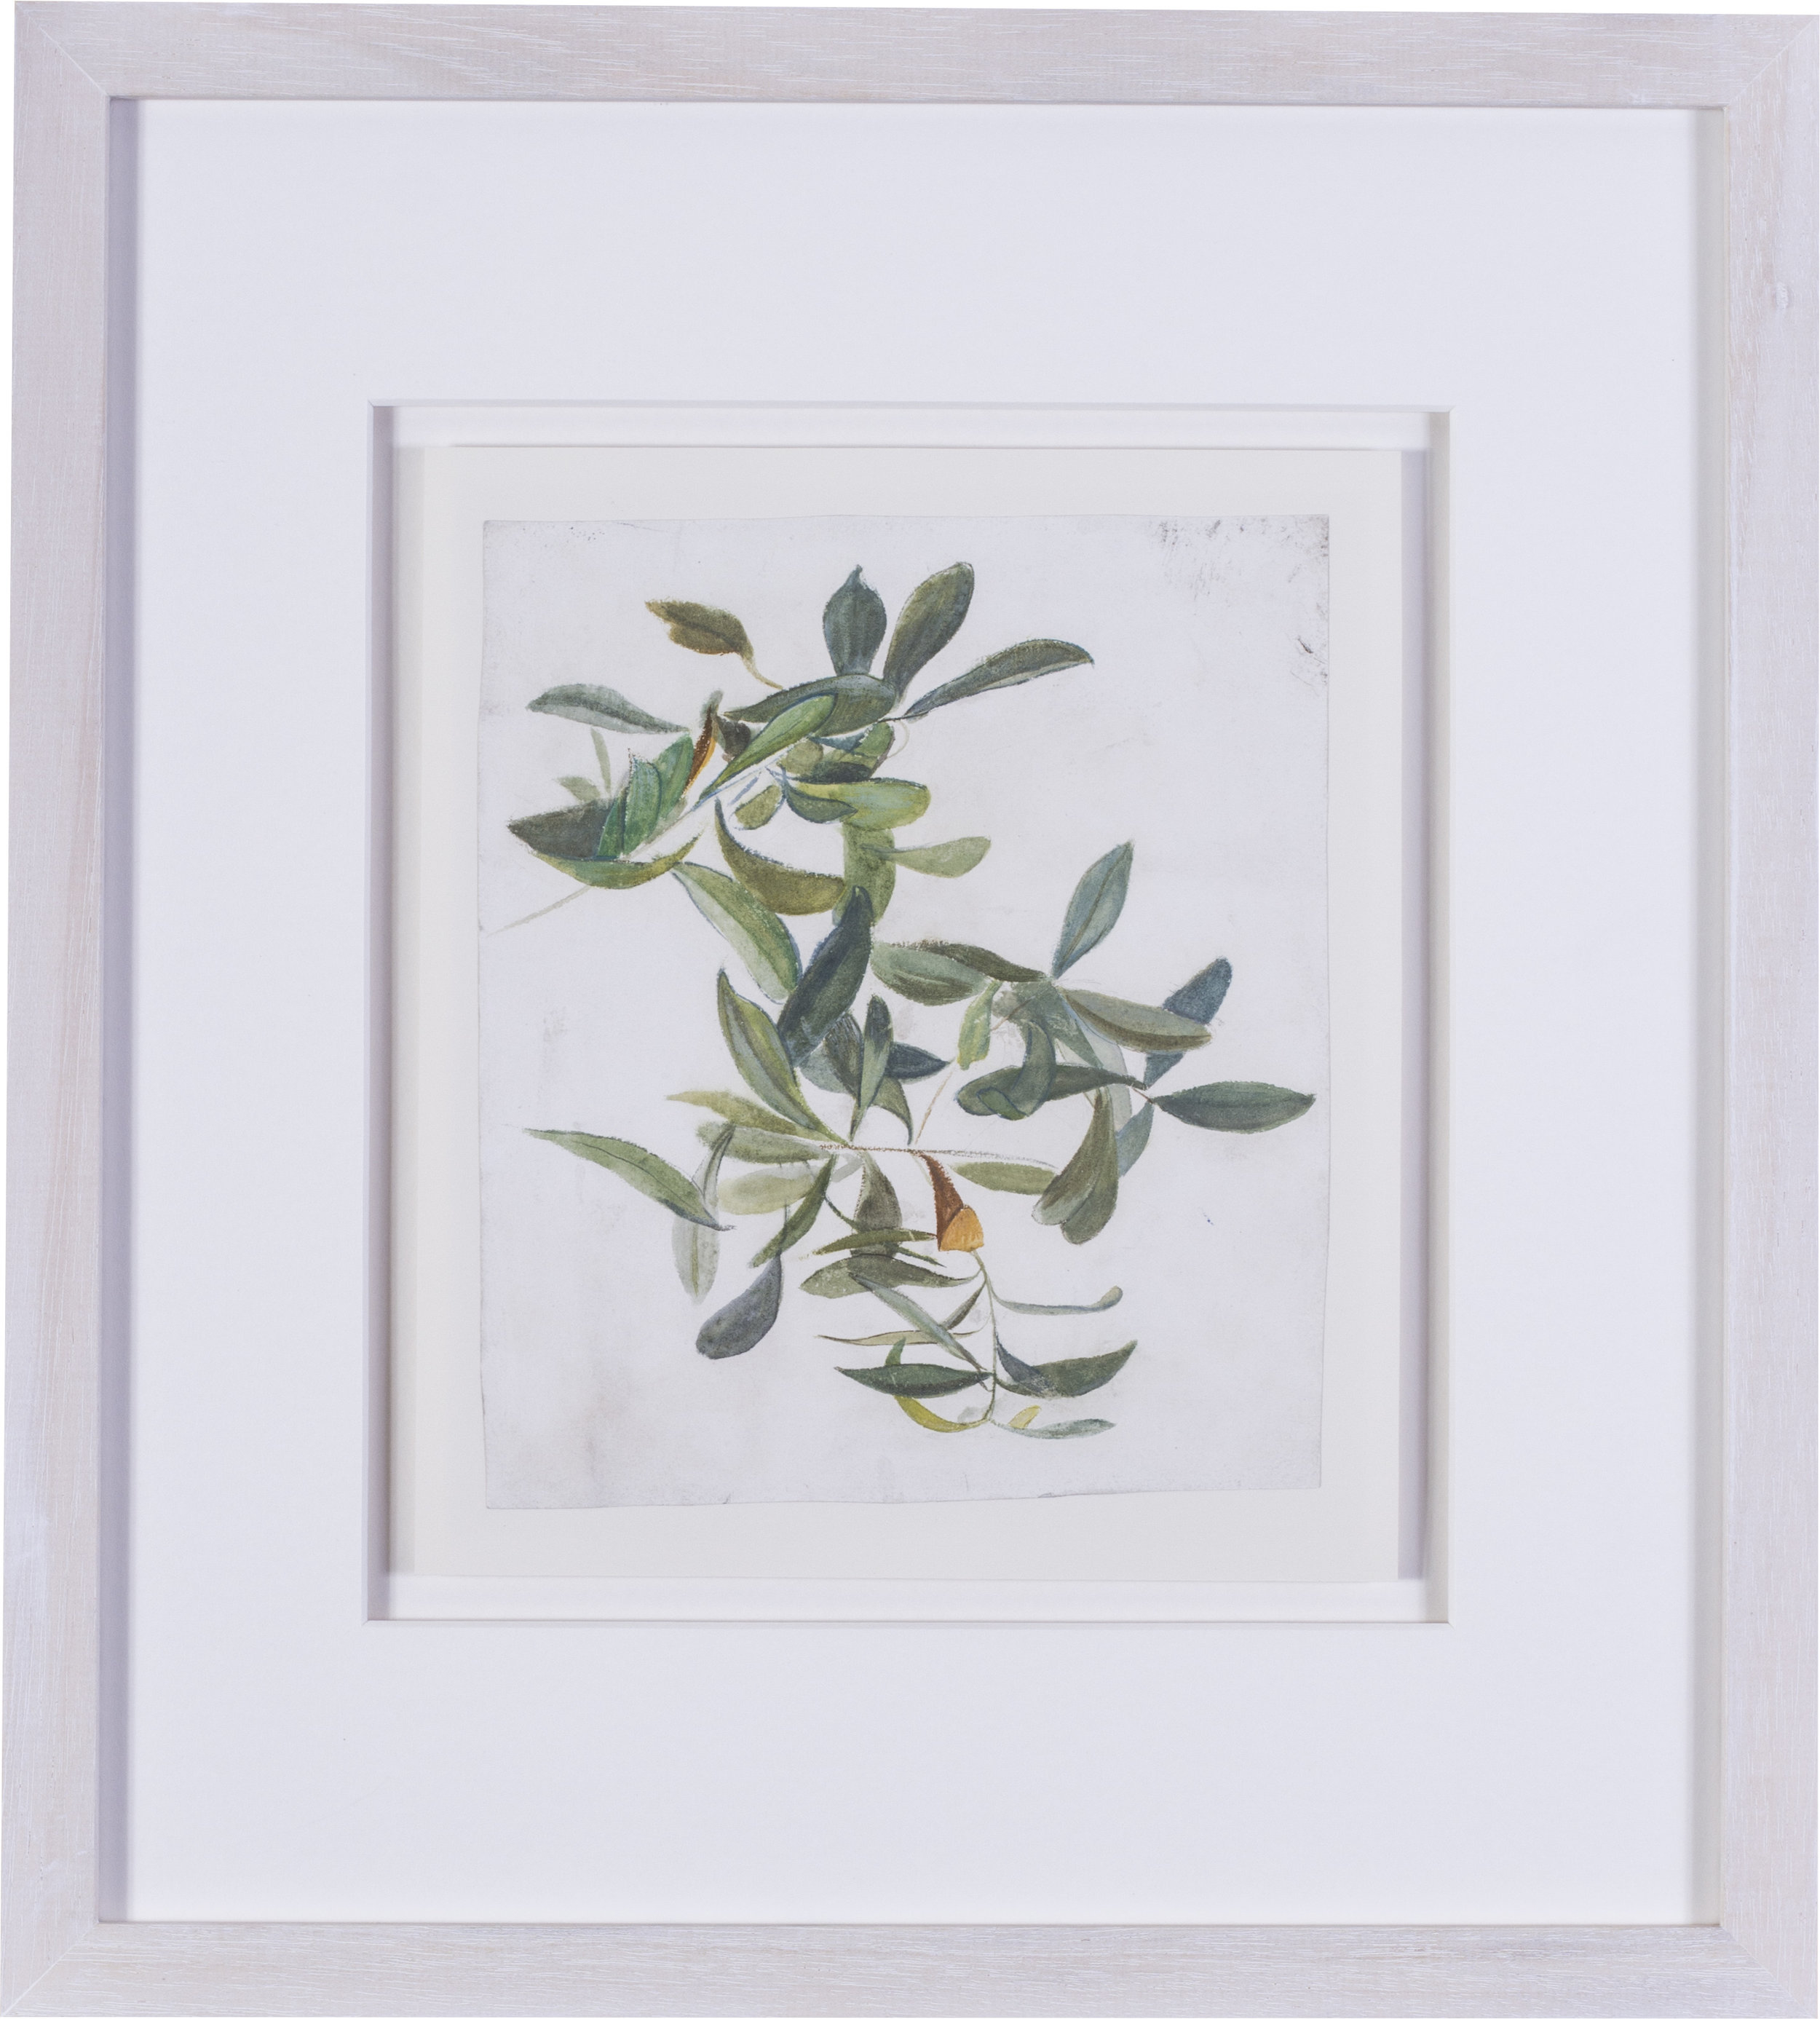 An olive branch    watercolour on paper  9 x 7.1/2 in. (22.8 x 19 cm.)  Provenance: The Clayton-Stamm Collection.  Dominic Winter, Cirencester, 8thNovember 2018, lot 464  £1,900